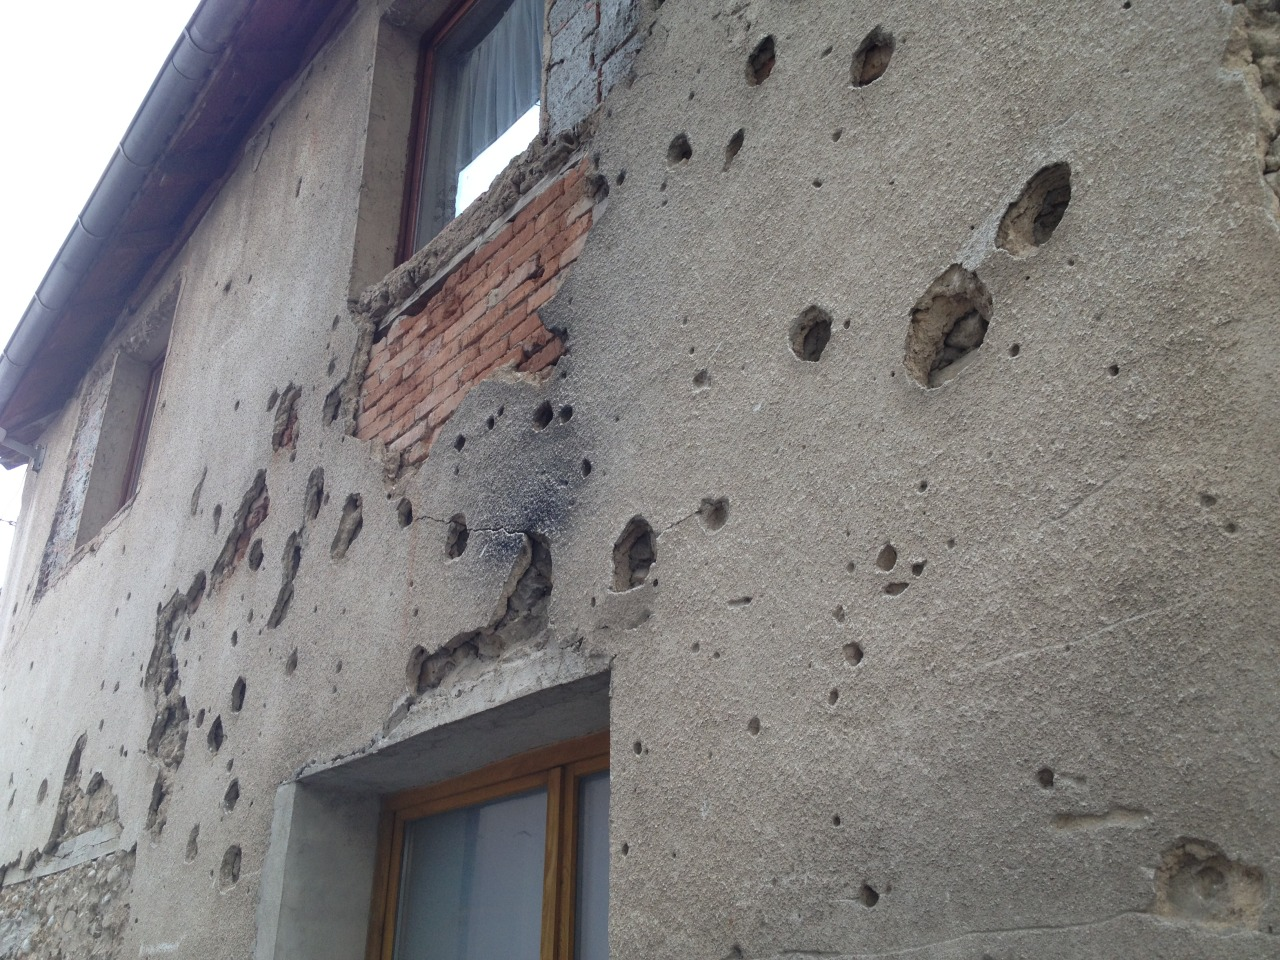 More evidence of war in Sarajevo